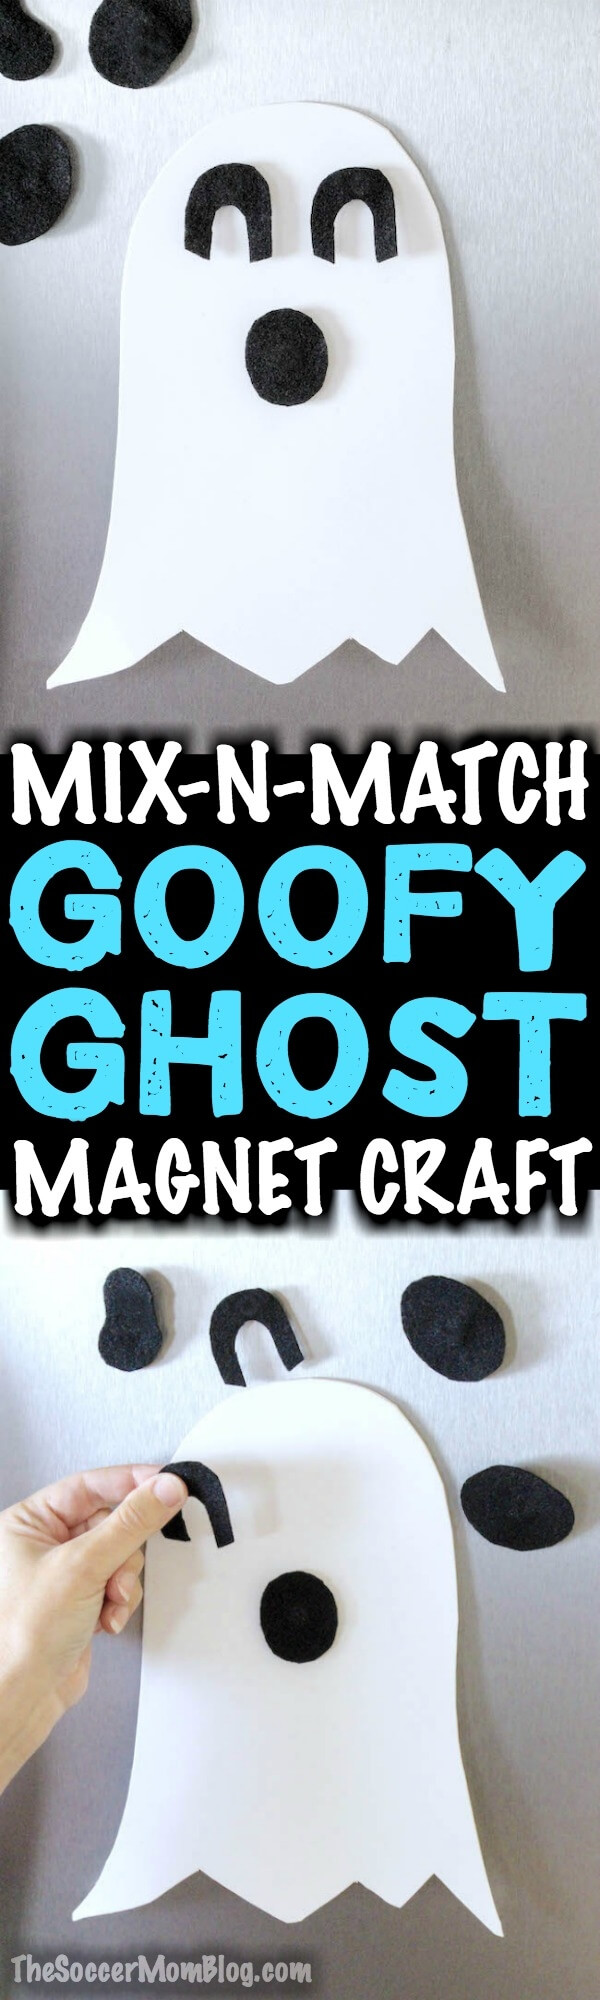 This fridge magnet ghost craft is a fun decoration to make with kids. They'll have a blast switching the pieces around to make lots of goofy ghost faces!